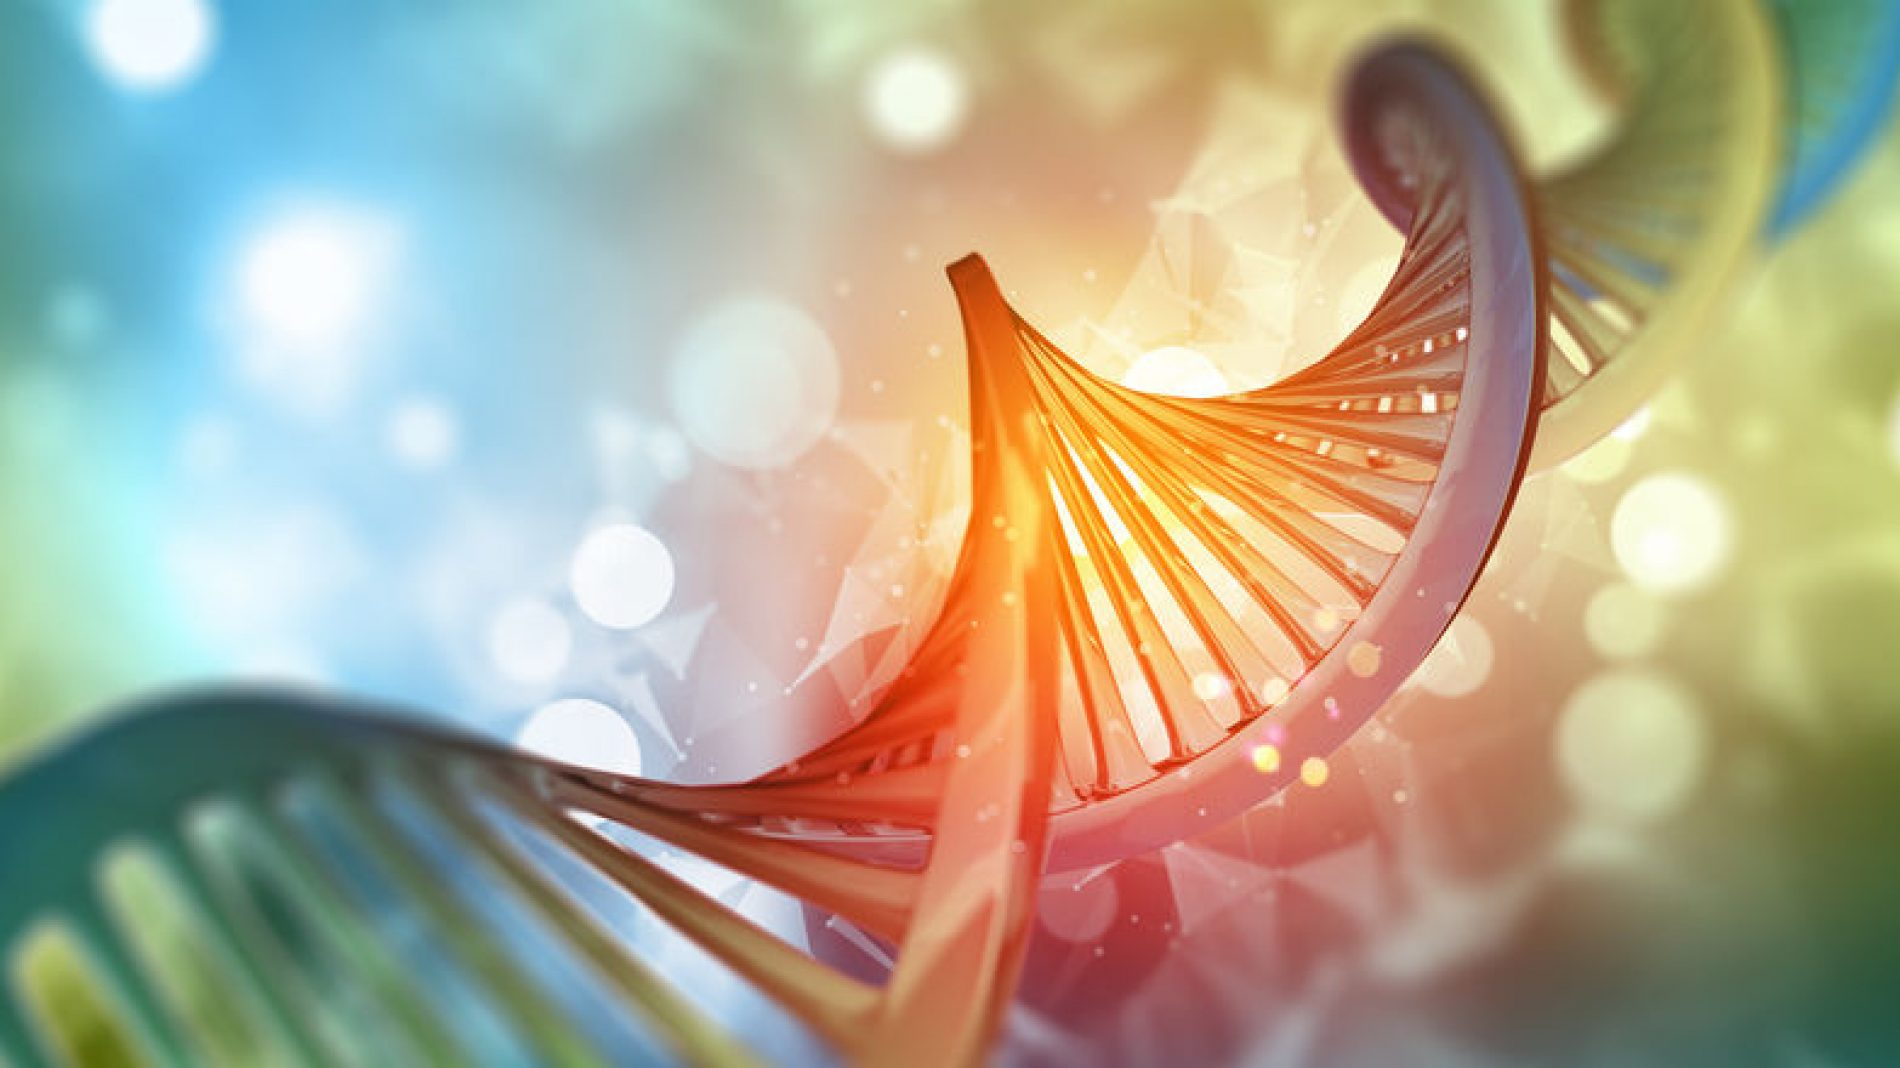 Why we need to consider the ethics of gene editing